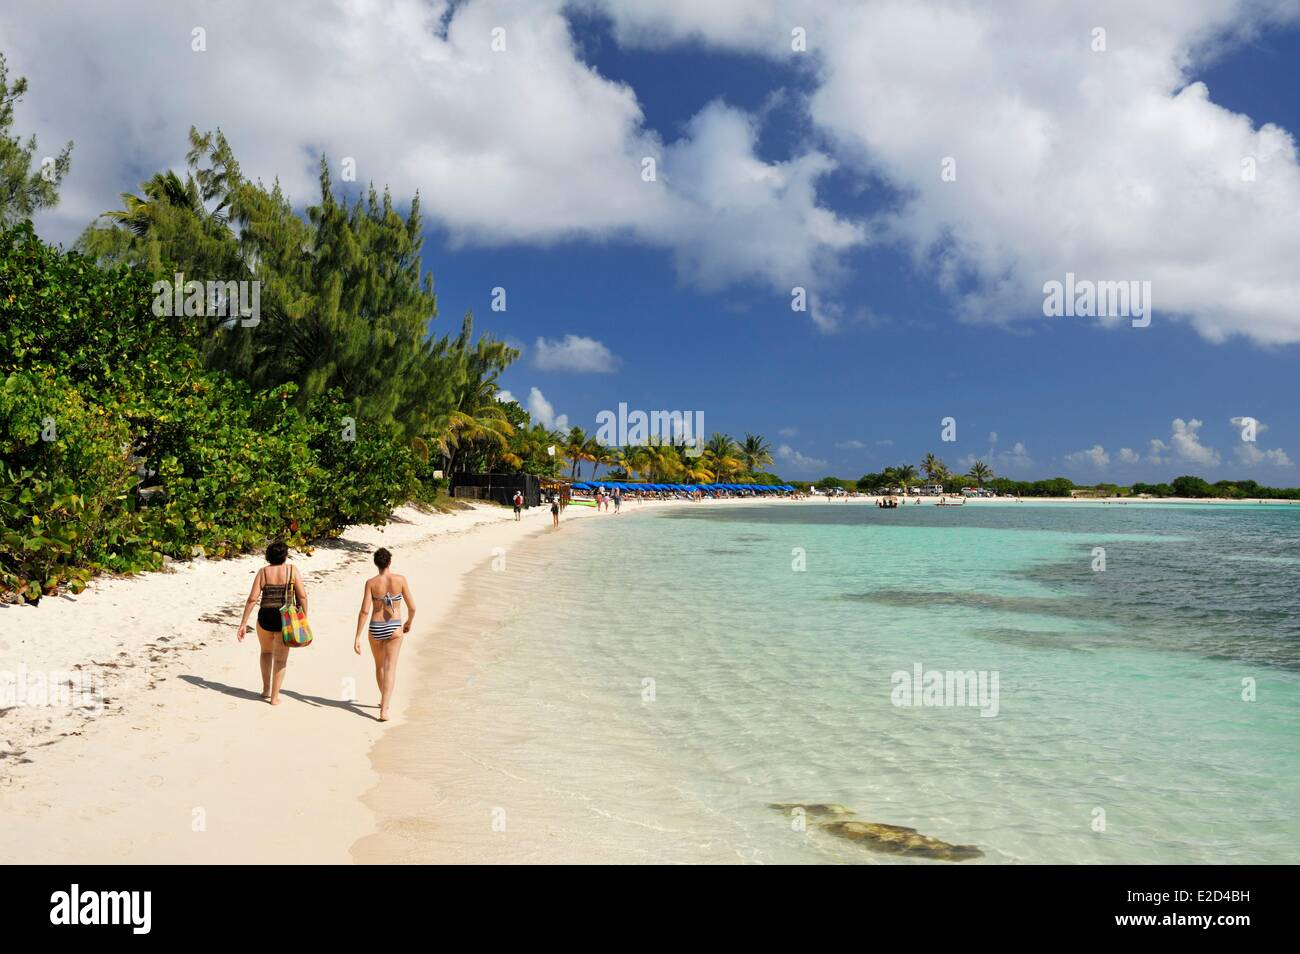 France Guadeloupe Saint Martin Le Galion two people walking towards the blue umbrellas lined up on the beach with - Stock Image